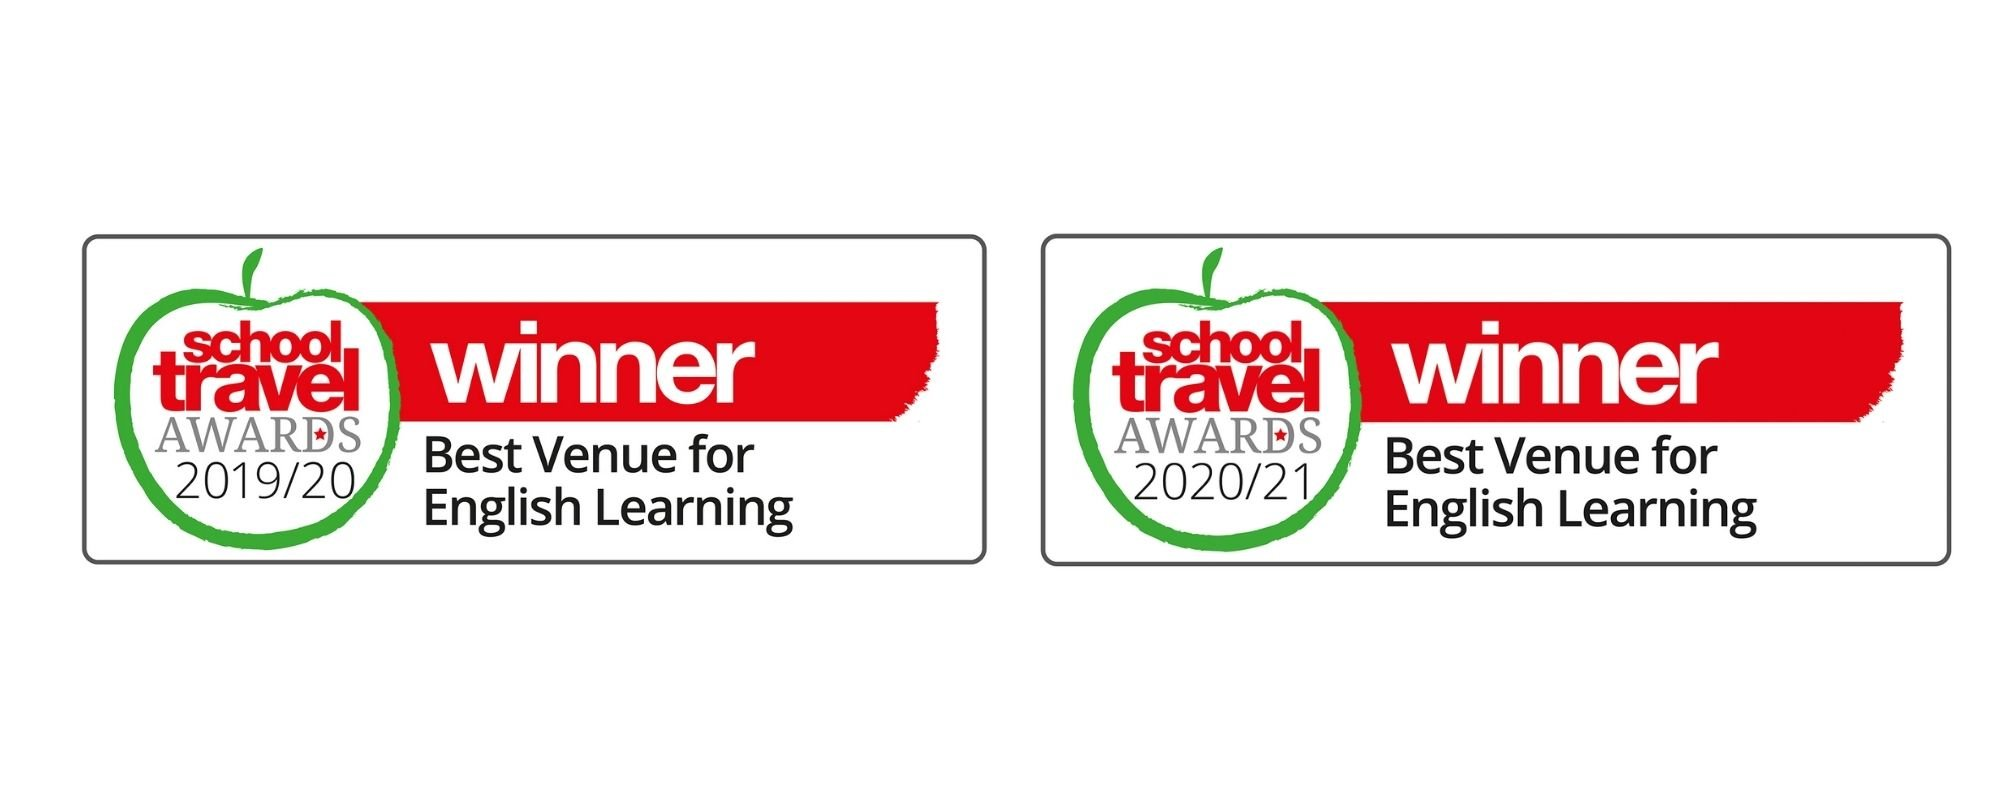 Two logos sit side by side indicating Shakespeare's Globe's win at the 19/20 and 20/21 School Travel Awards